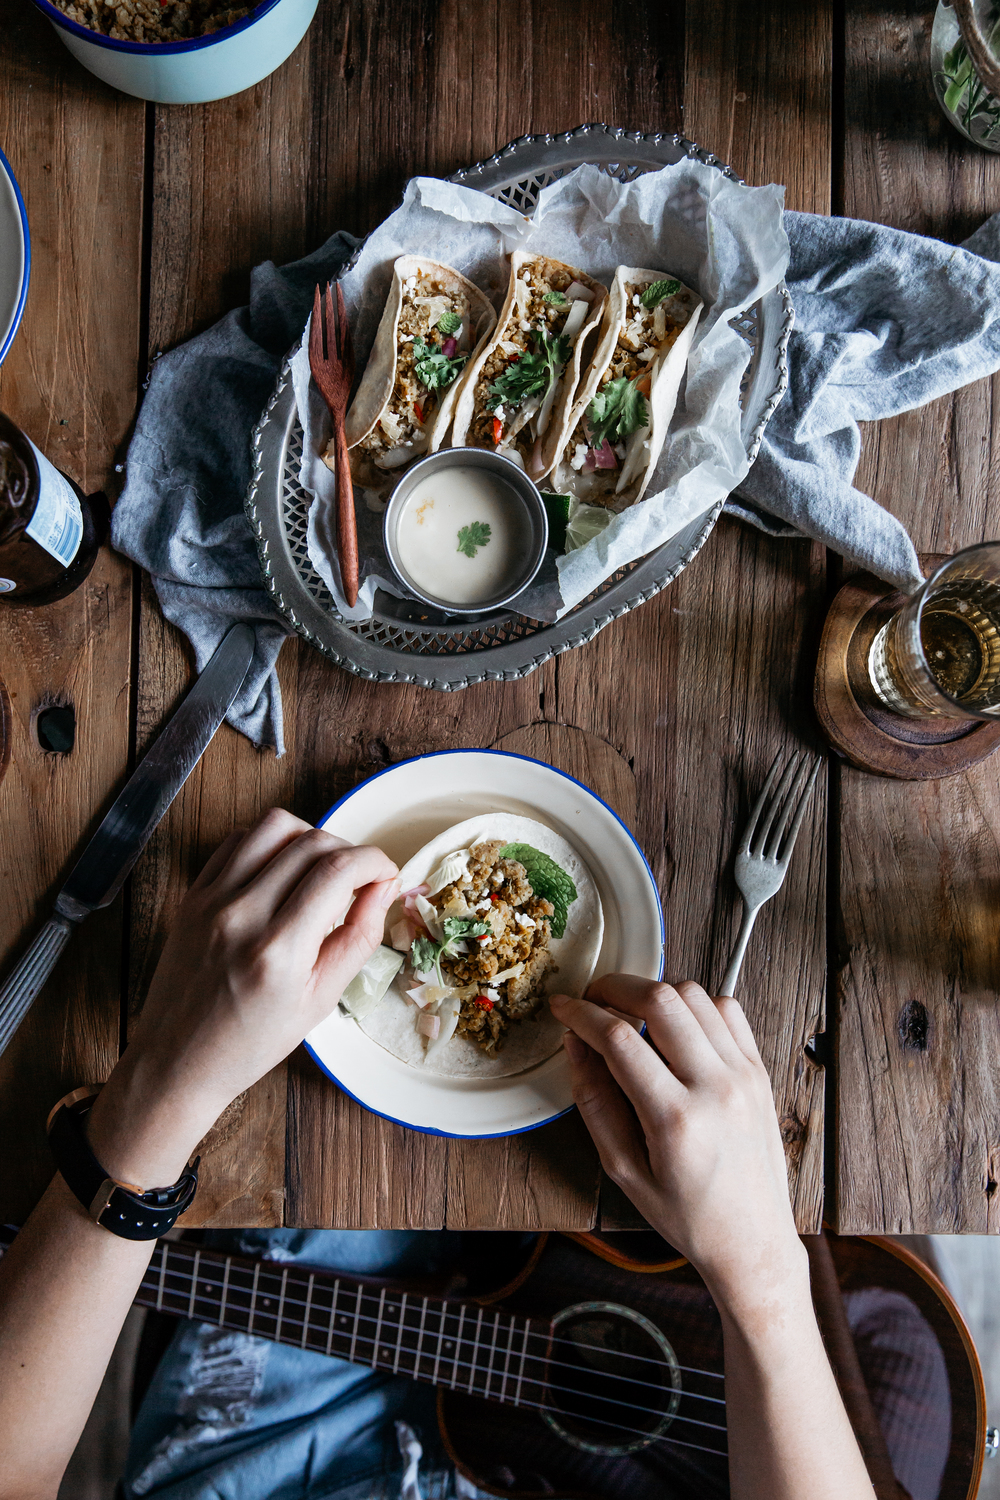 Invite-A-Friend: Orange Lemongrass Chipolata Tacos w/ Ruth